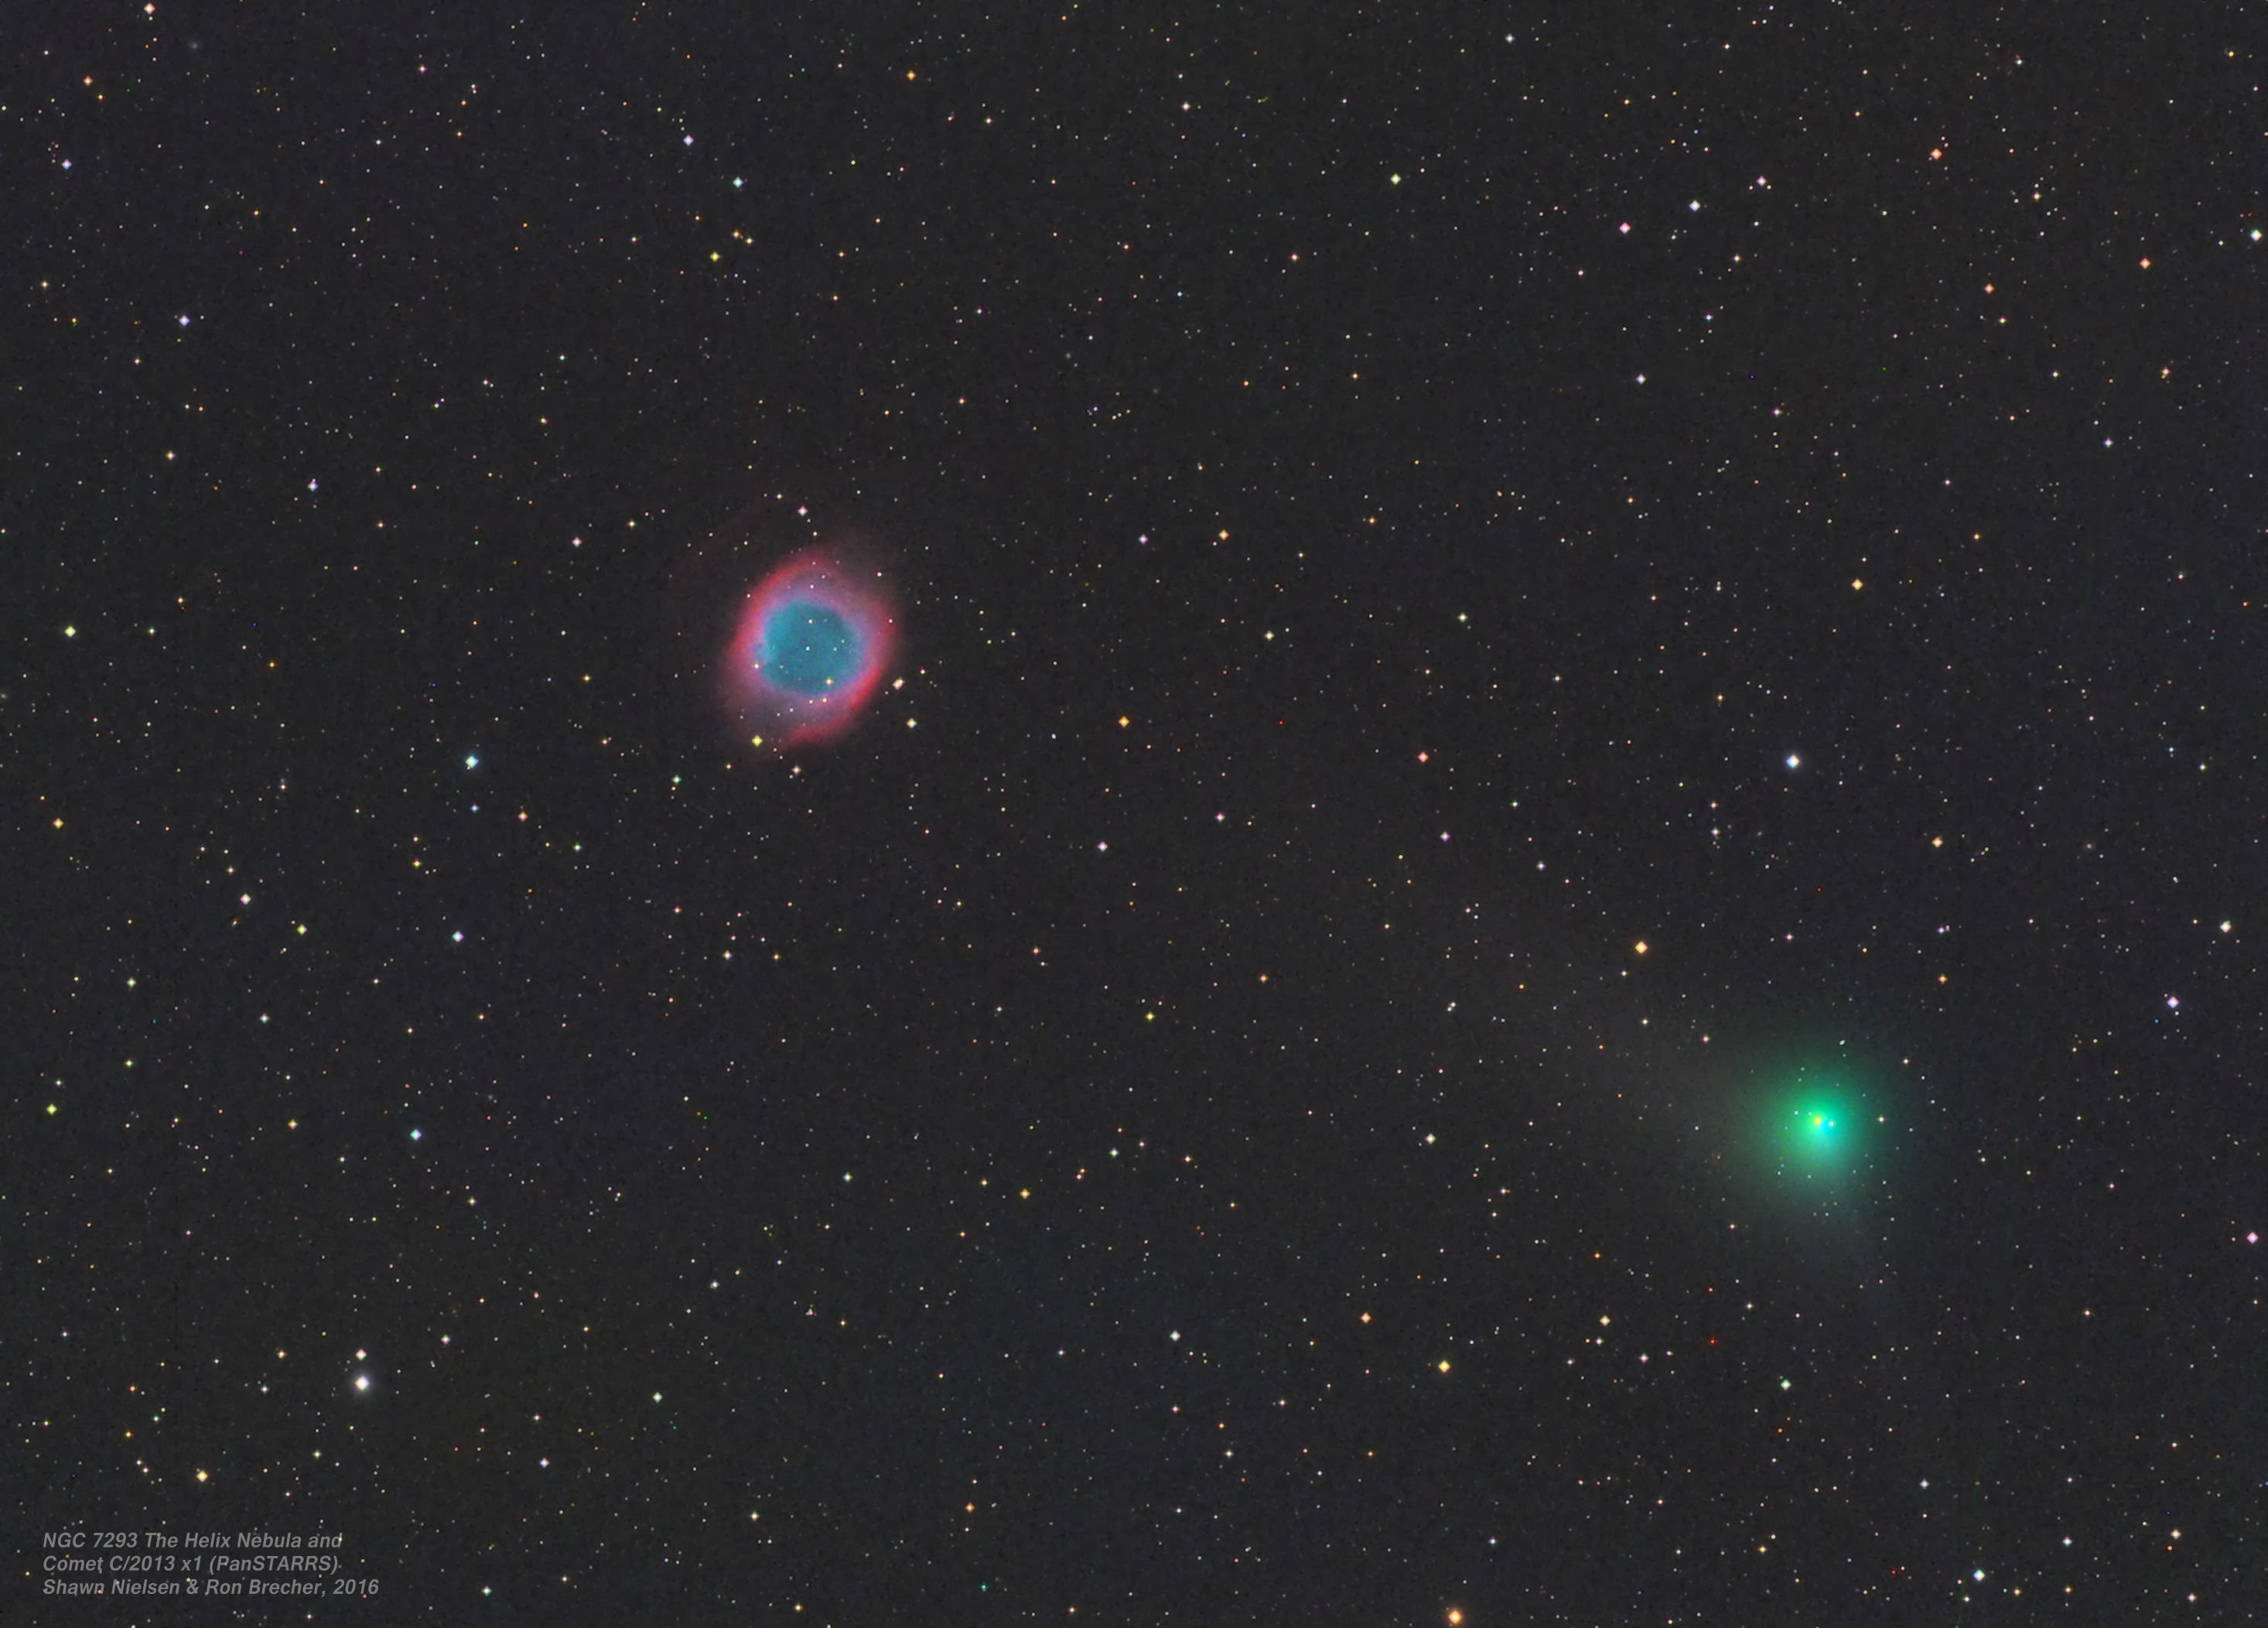 Comet C/2013 X1 and Helix Nebula close pairing in the night sky